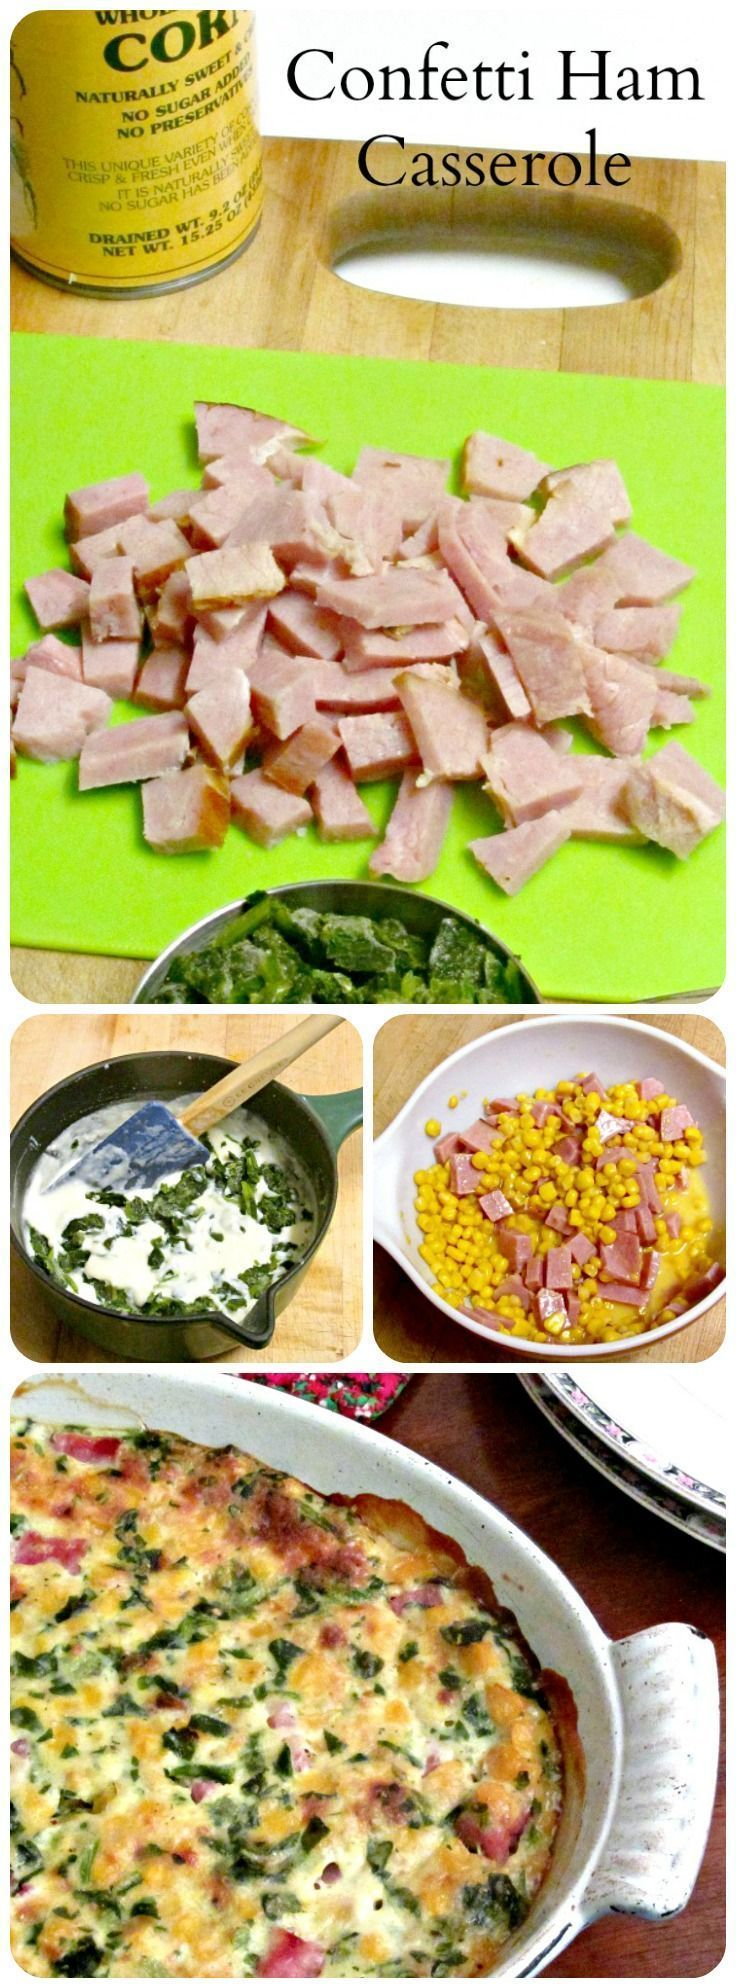 Use leftover ham to make a casserole with corn and spinach. Colorful, plenty of flavor, and a bit of a change. #leftovers #glutenfree #ham #easymeal